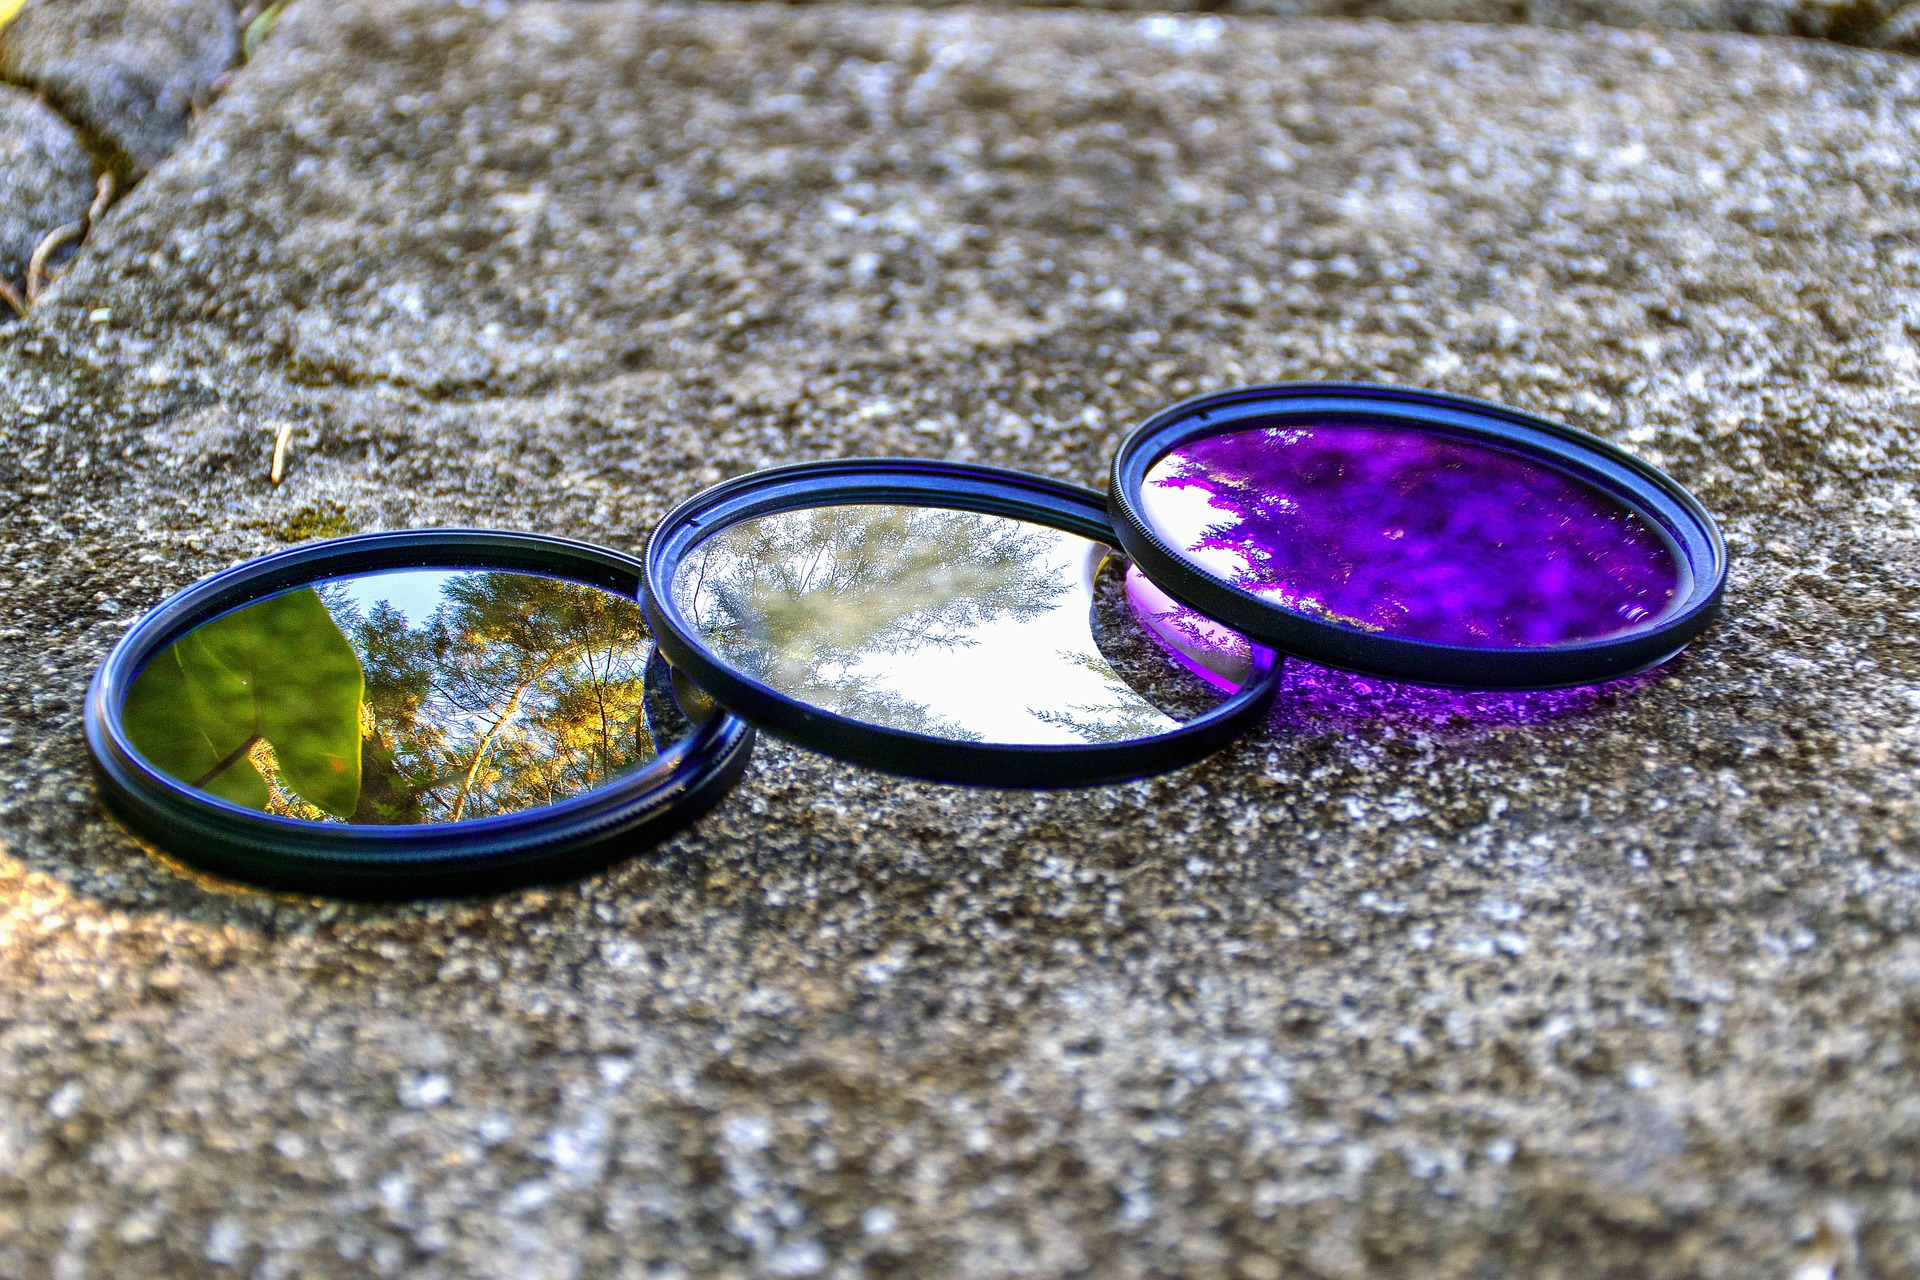 lens filter for product photography